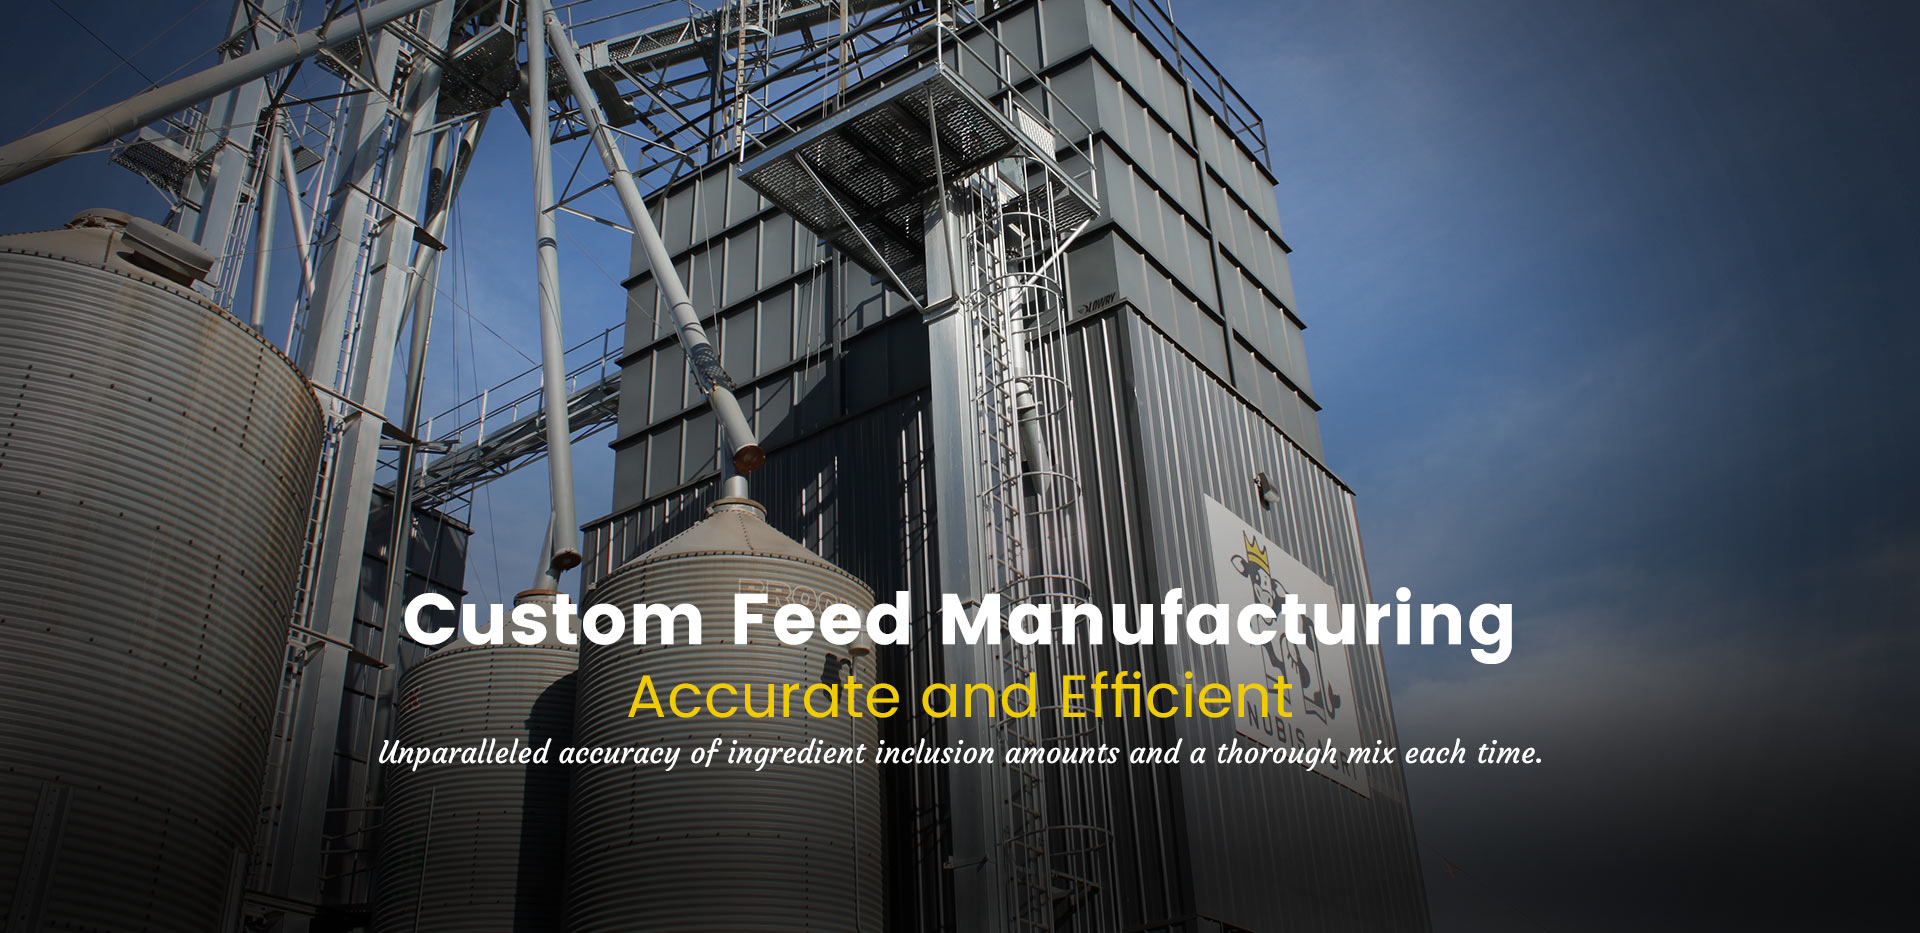 Custom Feed Manufacturing